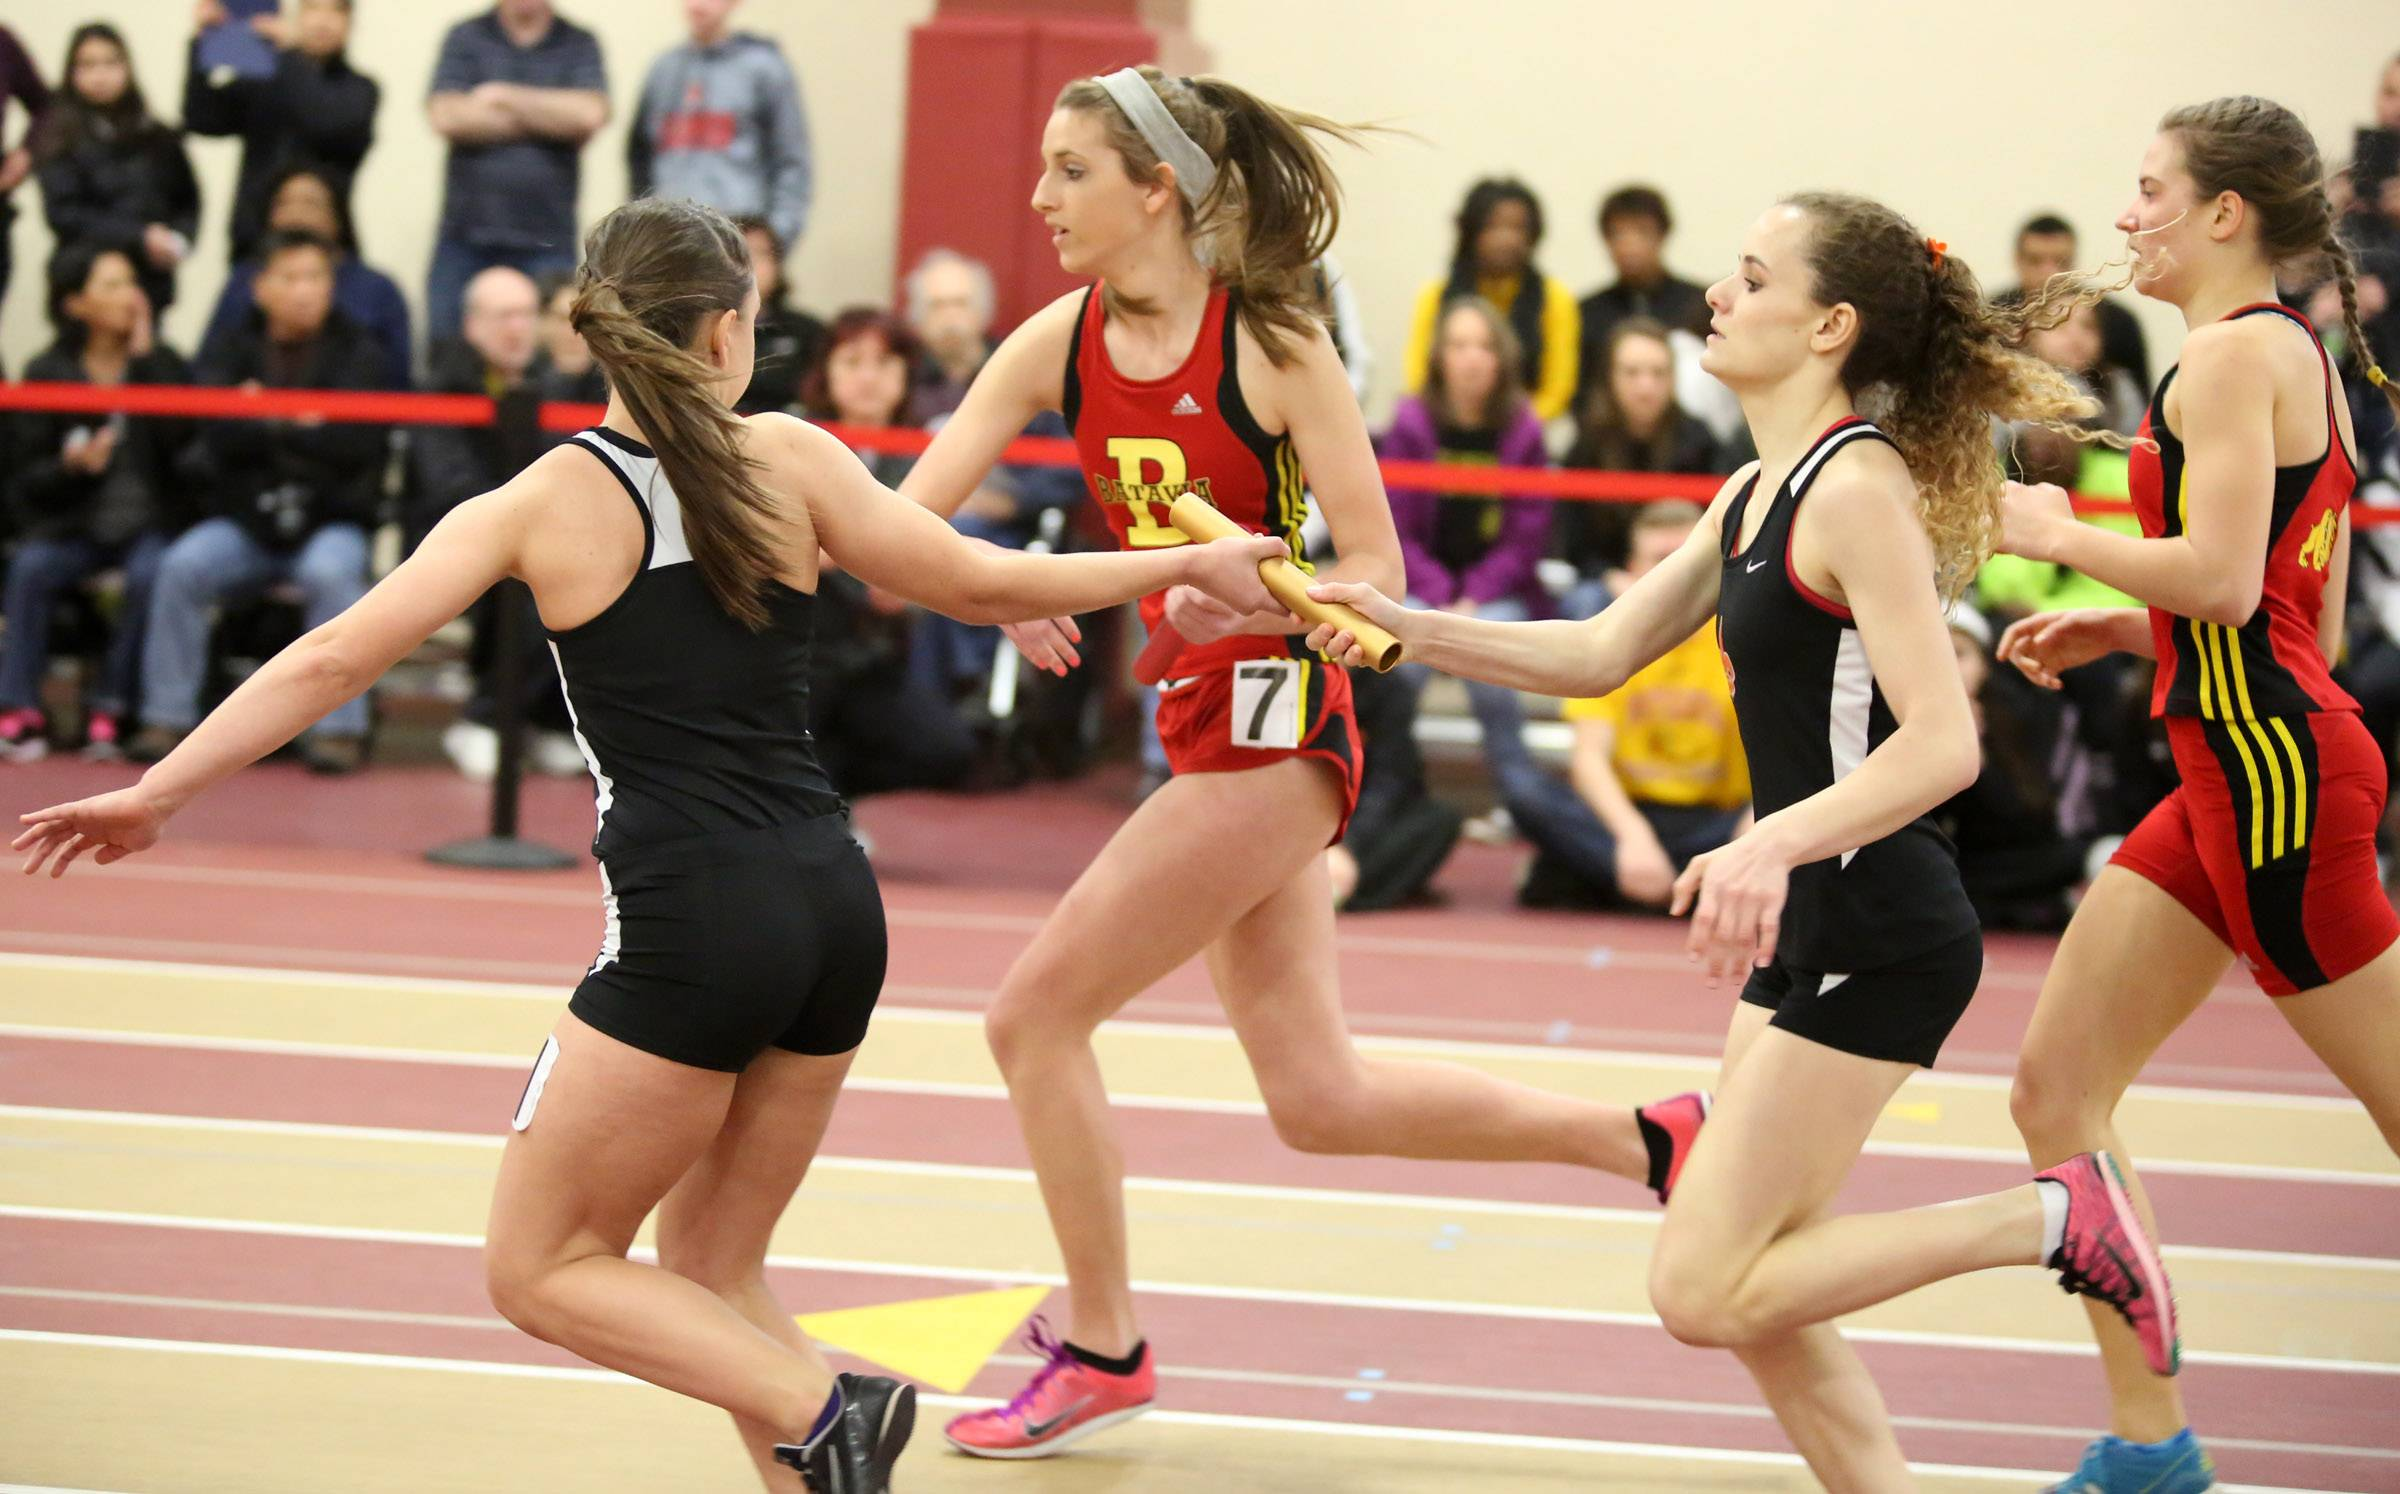 George LeClaire/gleclaire@dailyherald.com ¬ St. Charles East Anastasia Honea, right, hands the baton off to Corrin Adams, who is running the last leg of 4 x 800 meter relay final in an Upstate Eight Conference indoor track meet on Saturday at Batavia. ¬